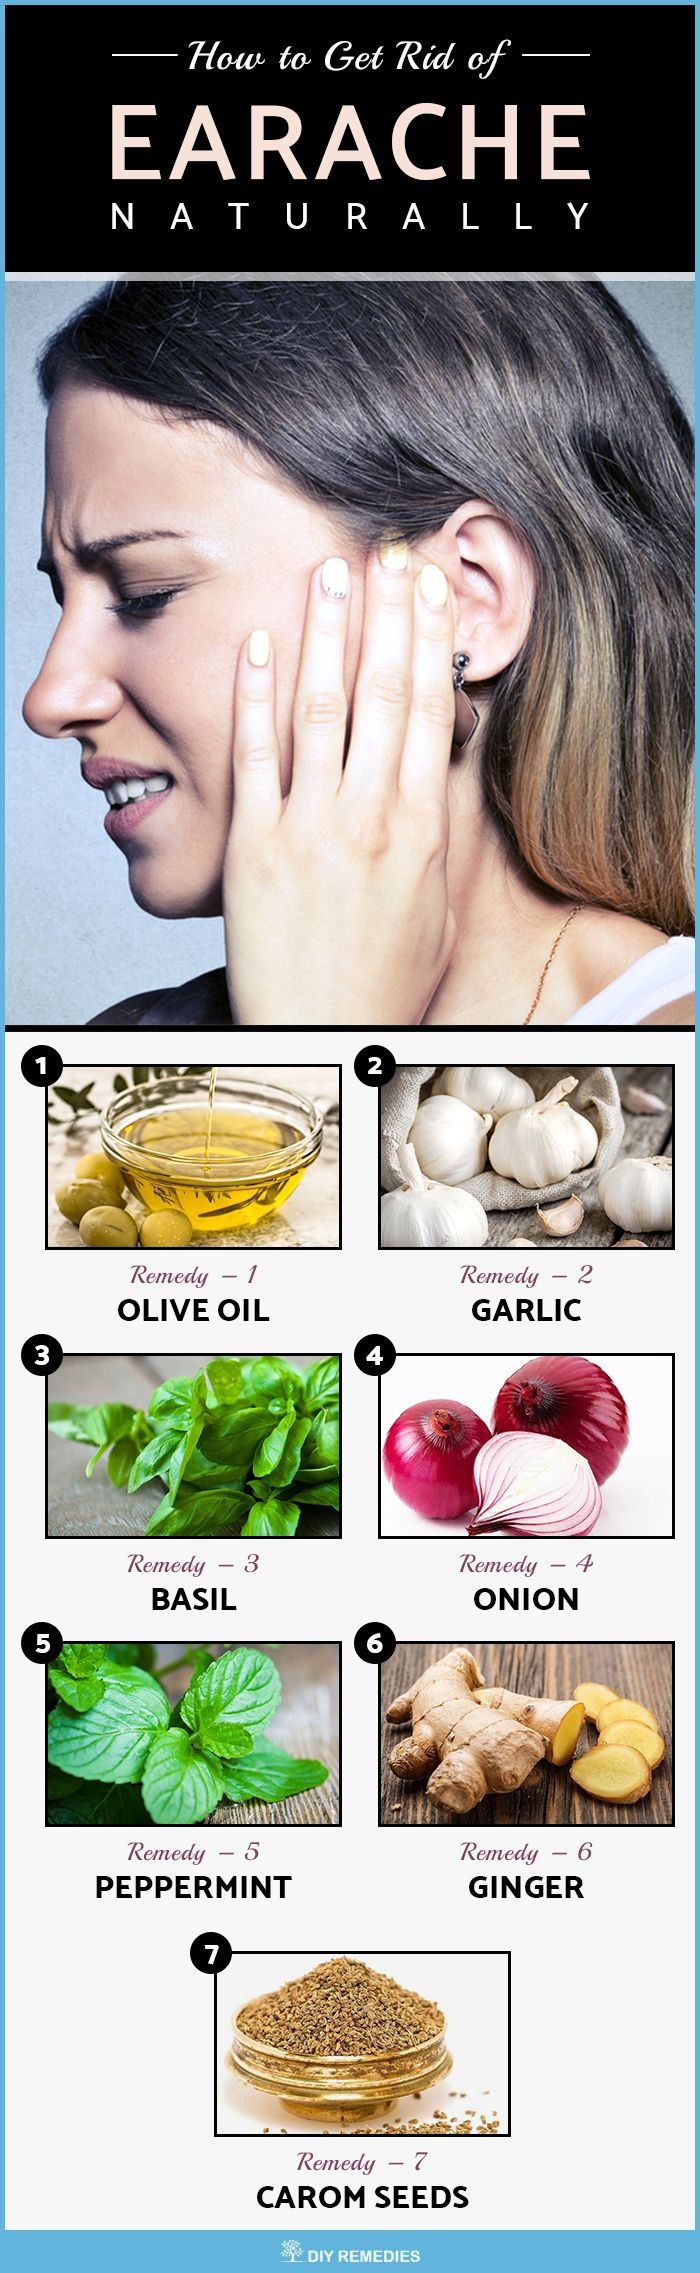 Home Remedies for Earache: Here are the best remedies that effectively treat your earache and its symptoms. All you need is to follow them regularly without any interruption.